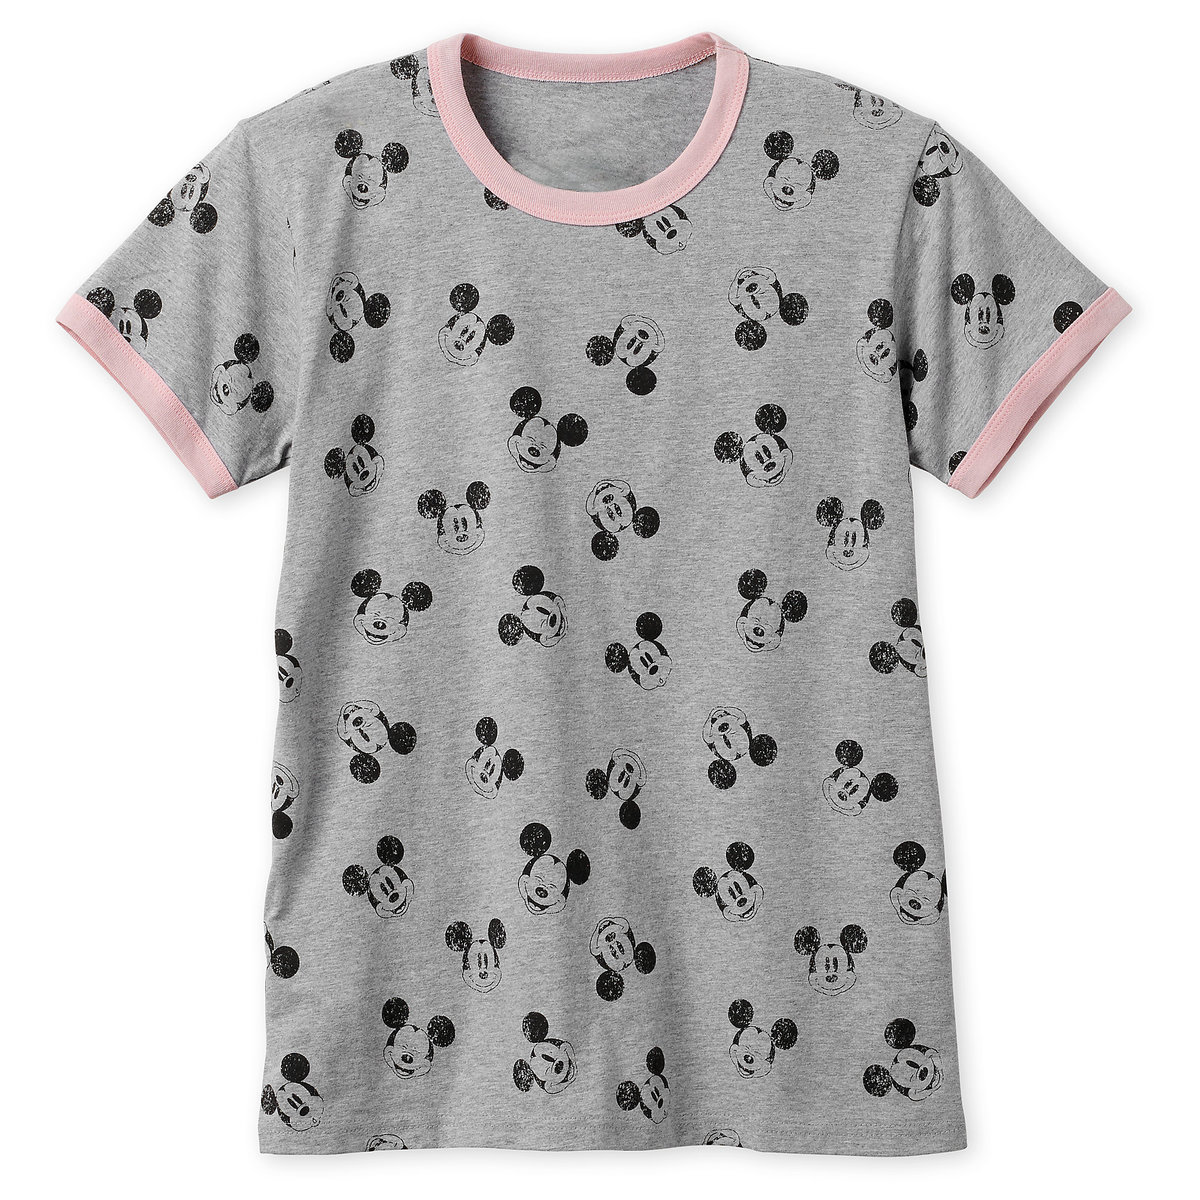 6e56020c2 Product Image of Mickey Mouse Allover Ringer T-Shirt for Women # 1